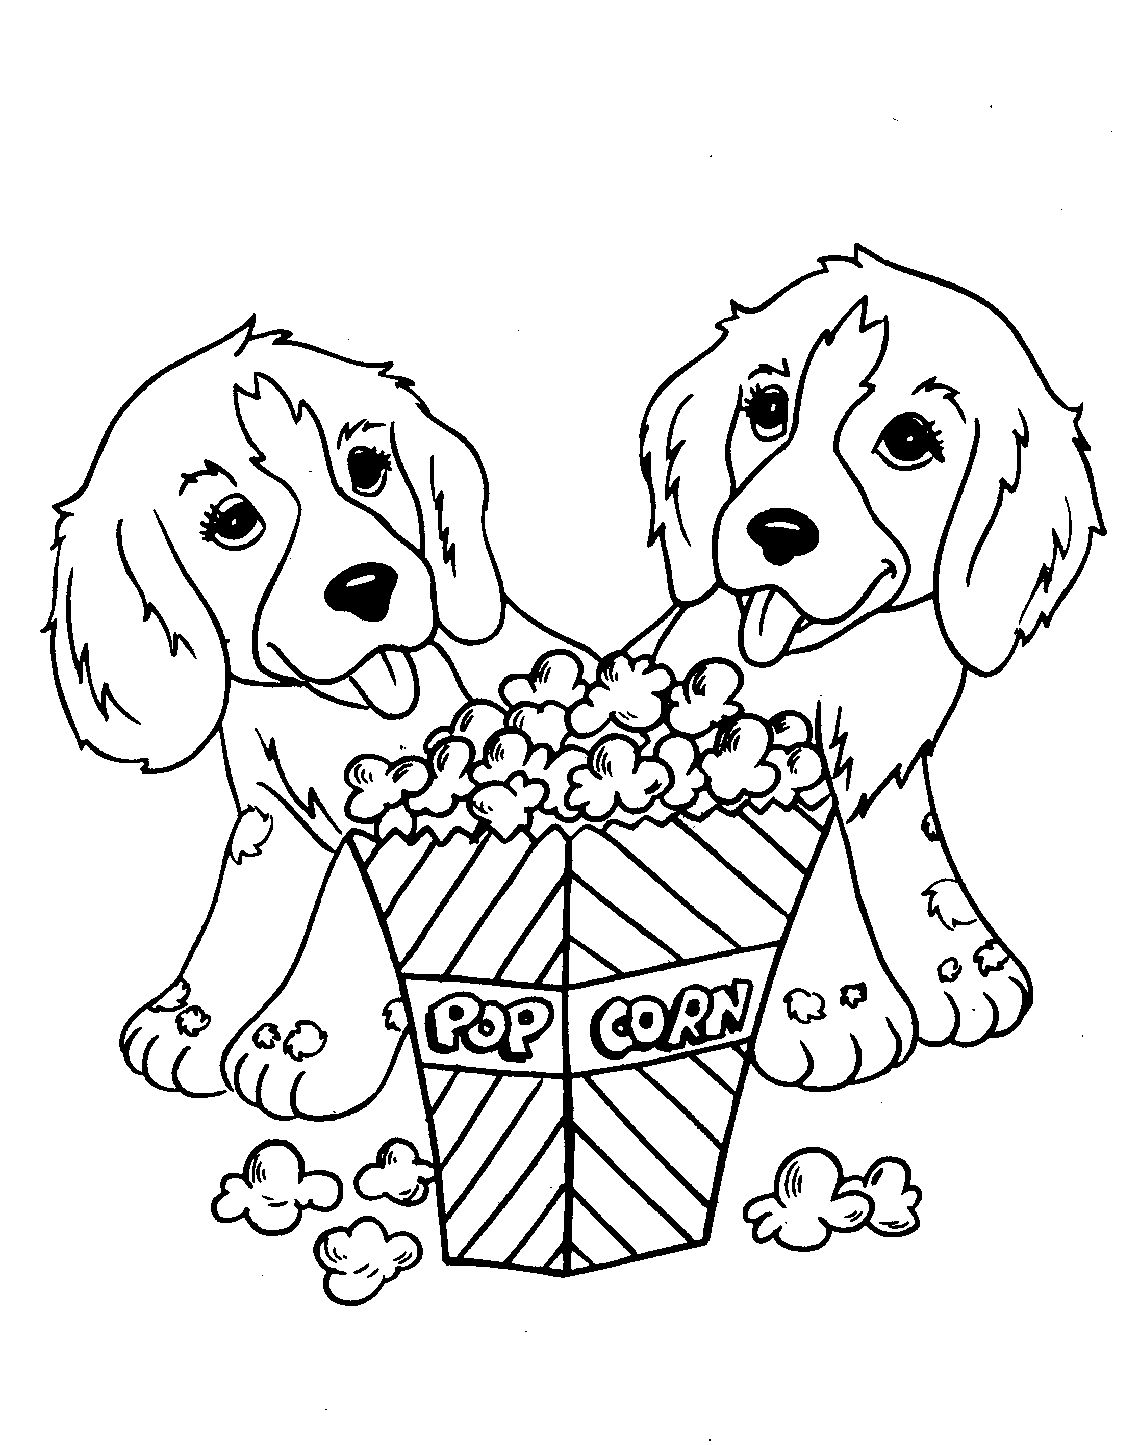 barbie and puppy coloring pages barbie puppy adventure coloring page coloring pages pages coloring and puppy barbie